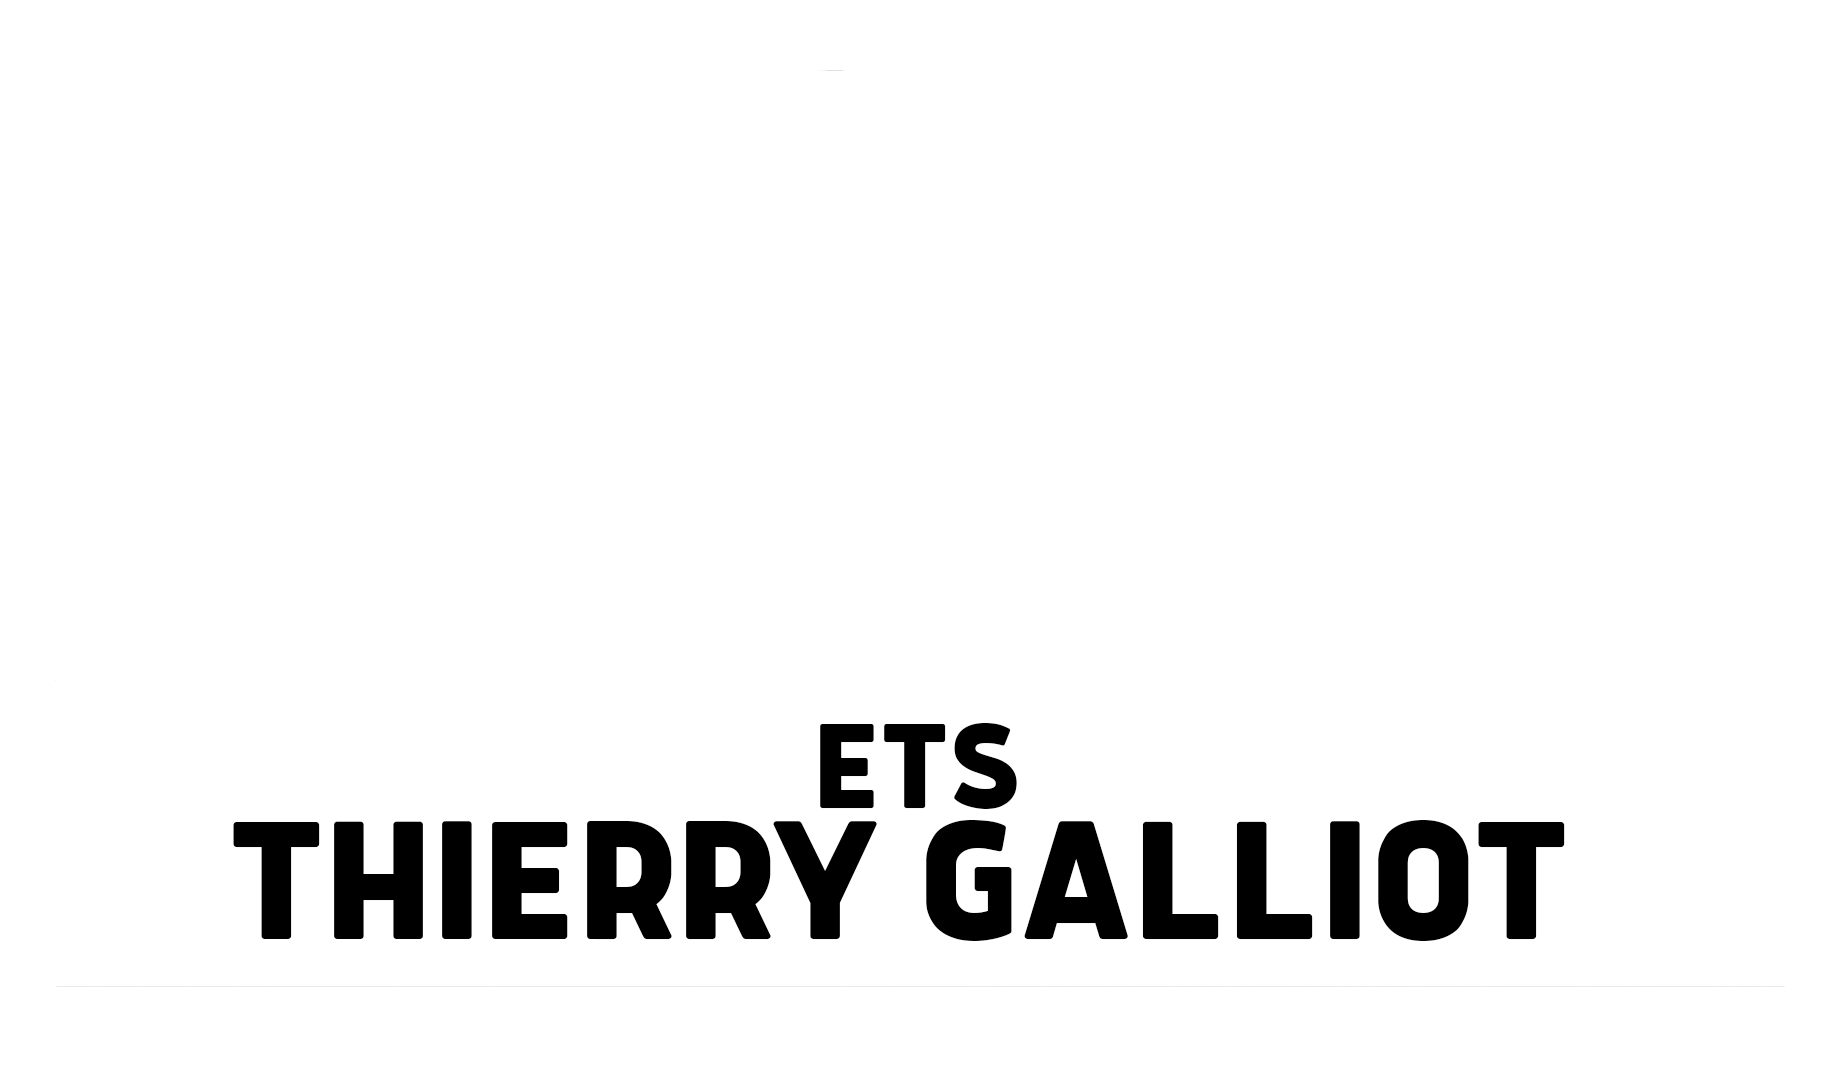 ETS THIERRY GALLIOT